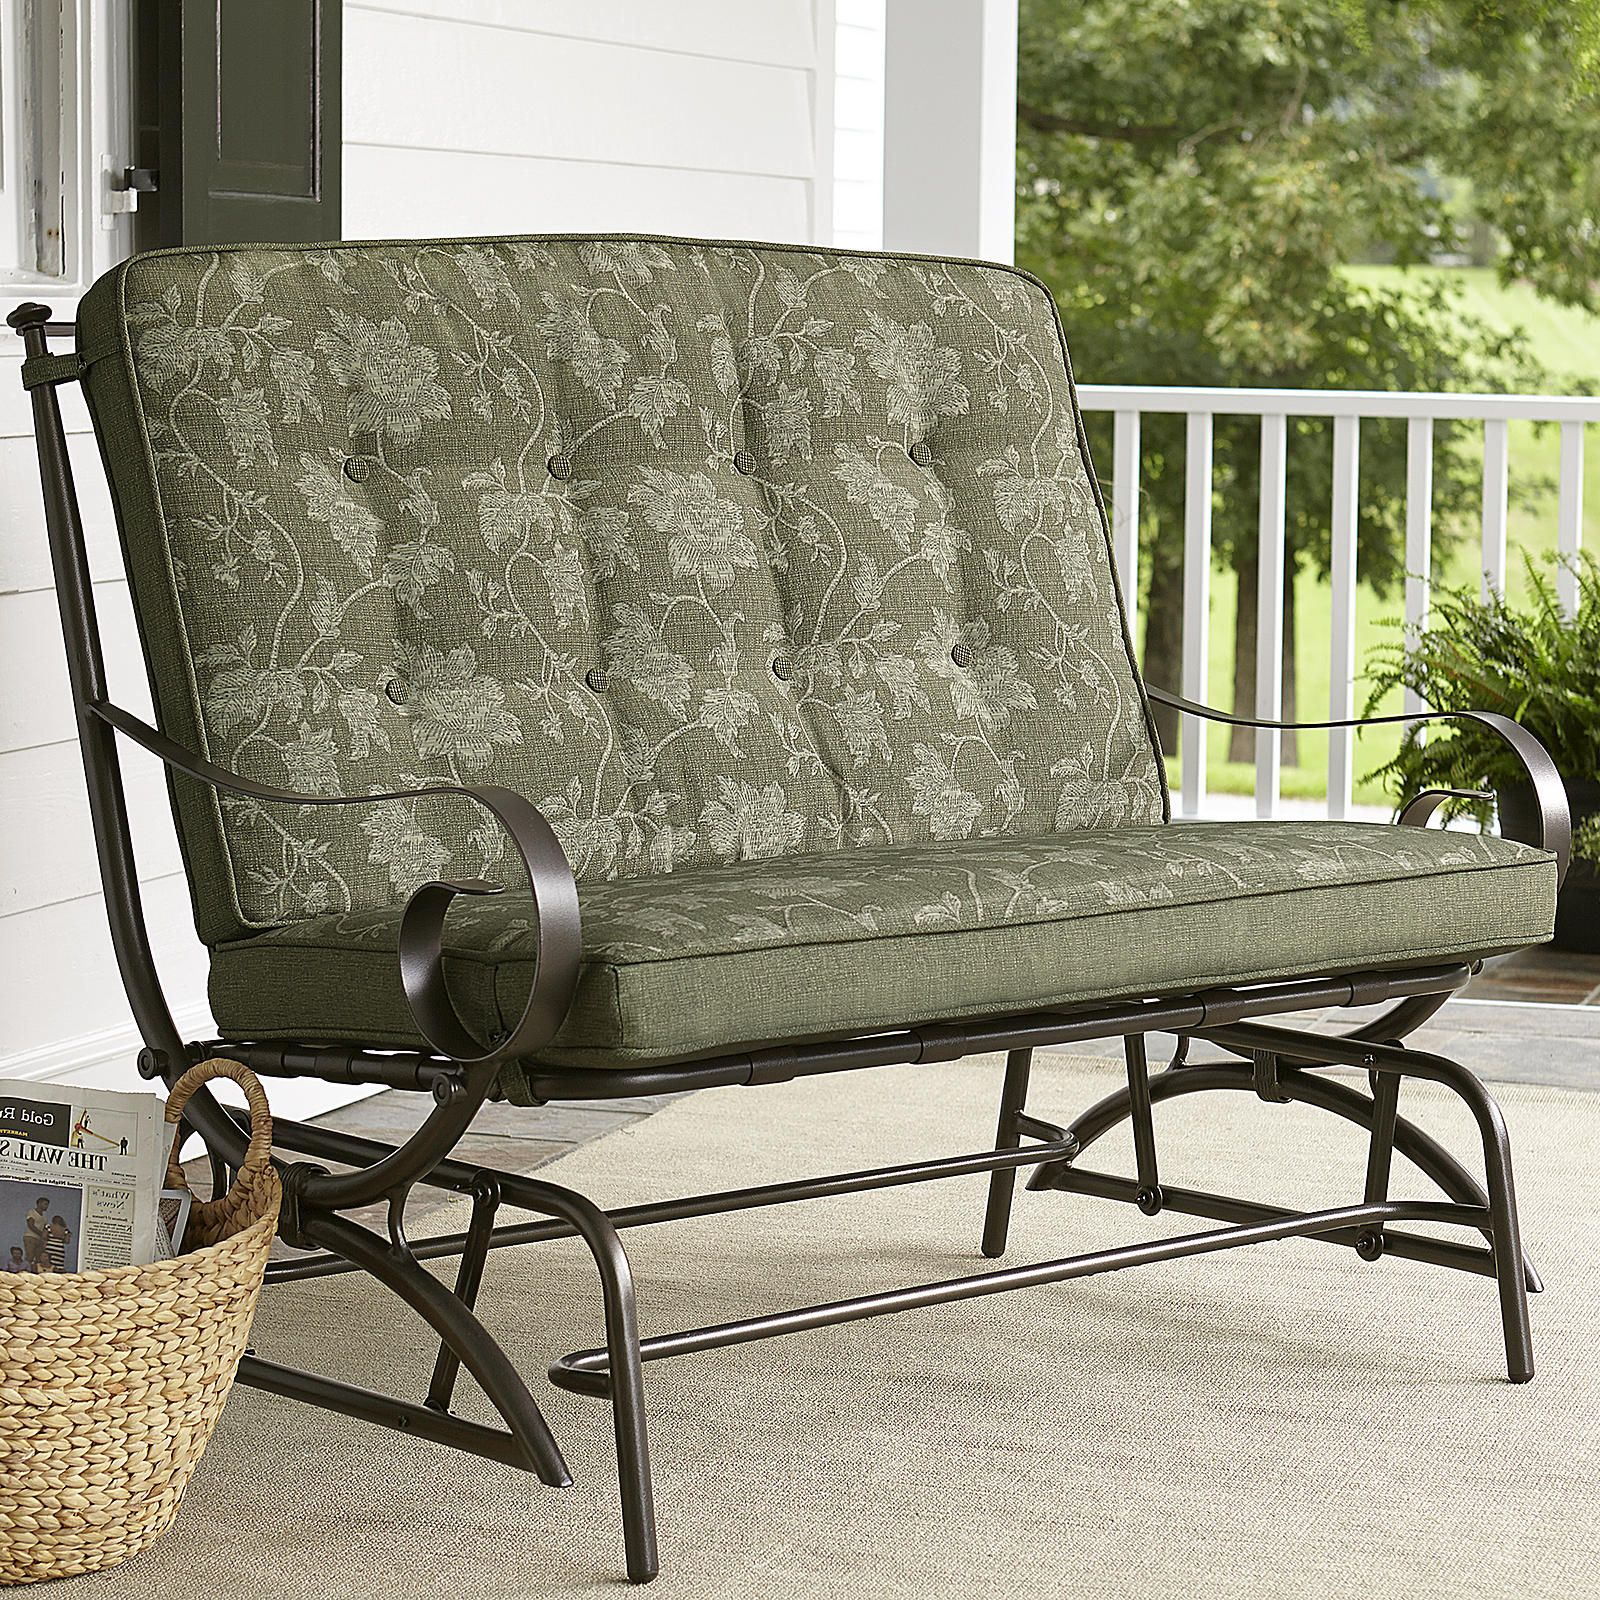 Jaclyn Smith Cora Cushion Double Glider   Outdoor Living   Patio Furniture    Gliders U0026 Rockers